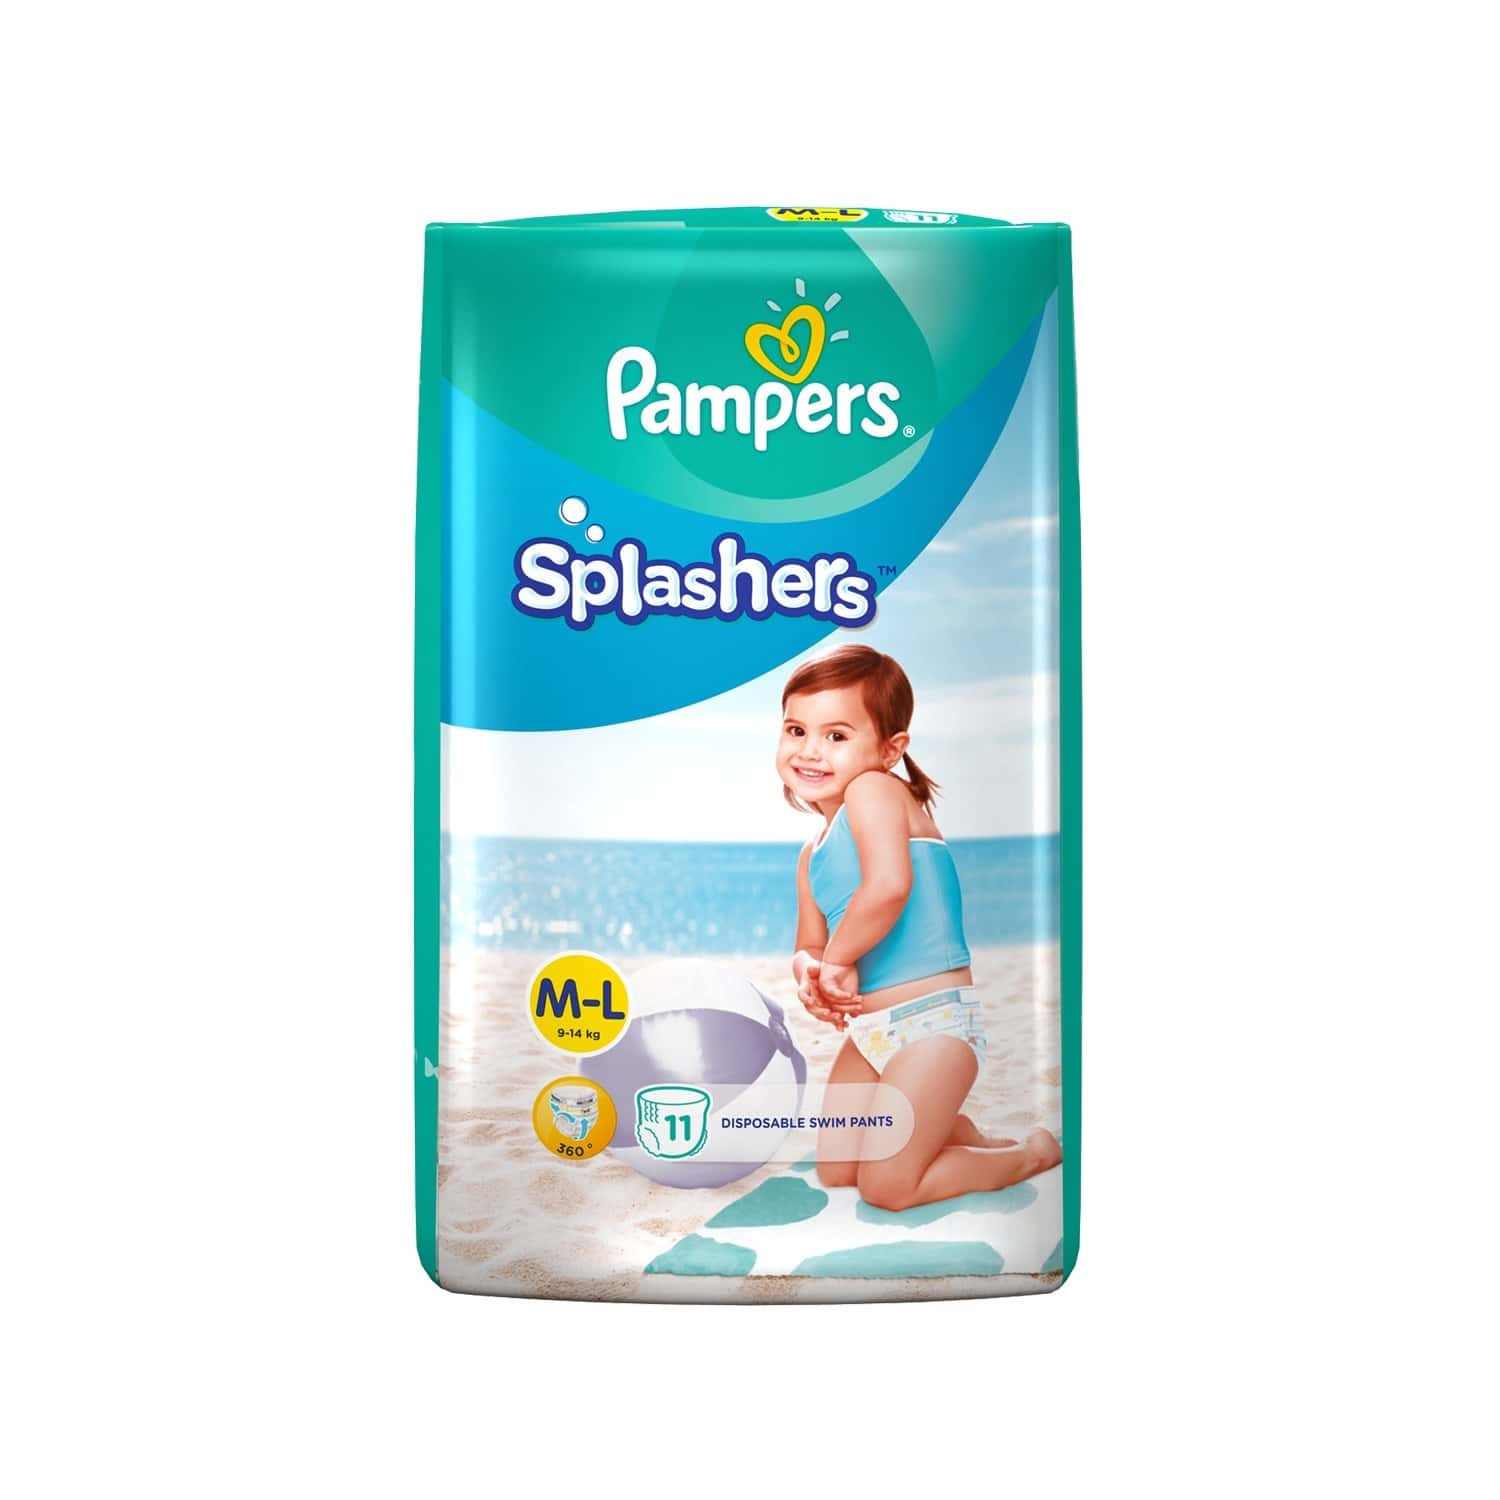 Pampers Splashers Disposable Swim Pants Diaper Size L Packet Of 11